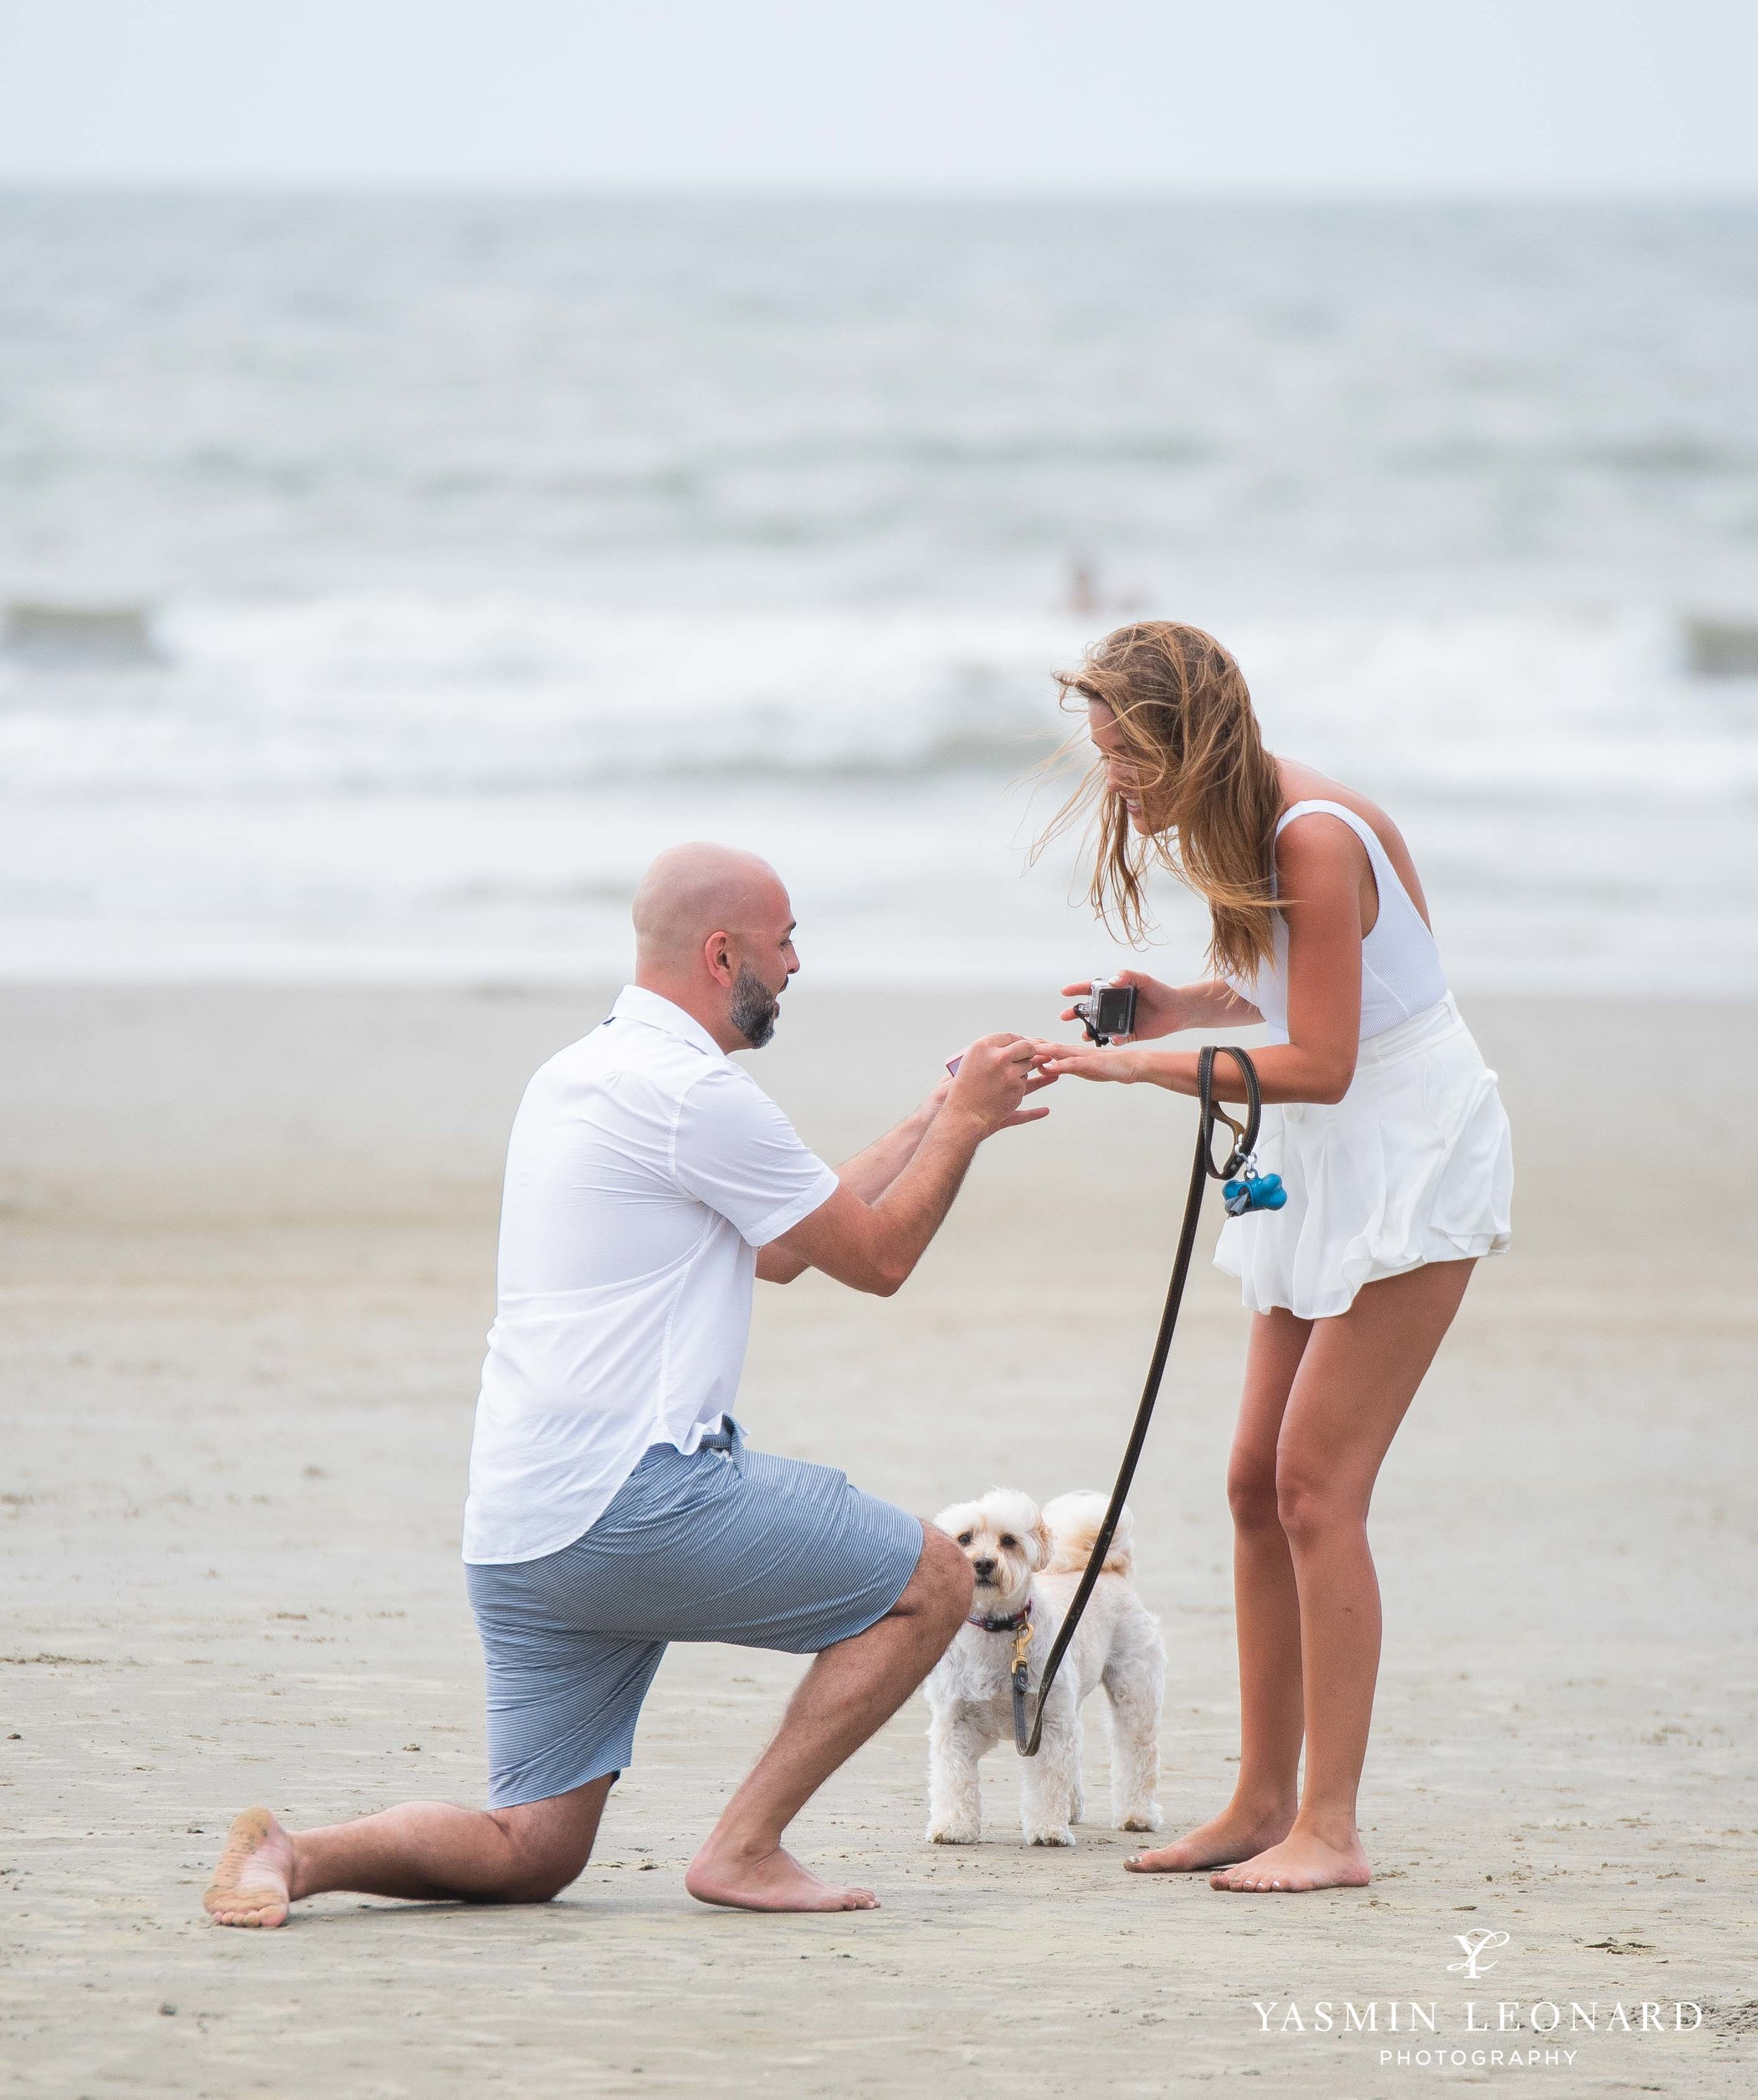 Beach Proposal - Beach Engagement Kiawah Island Photographer - NC Beach Photographer - How He Asked - NC Photographer - Proposal Ideas - Engagement Ring - Yasmin Leonard Photography-2.jpg